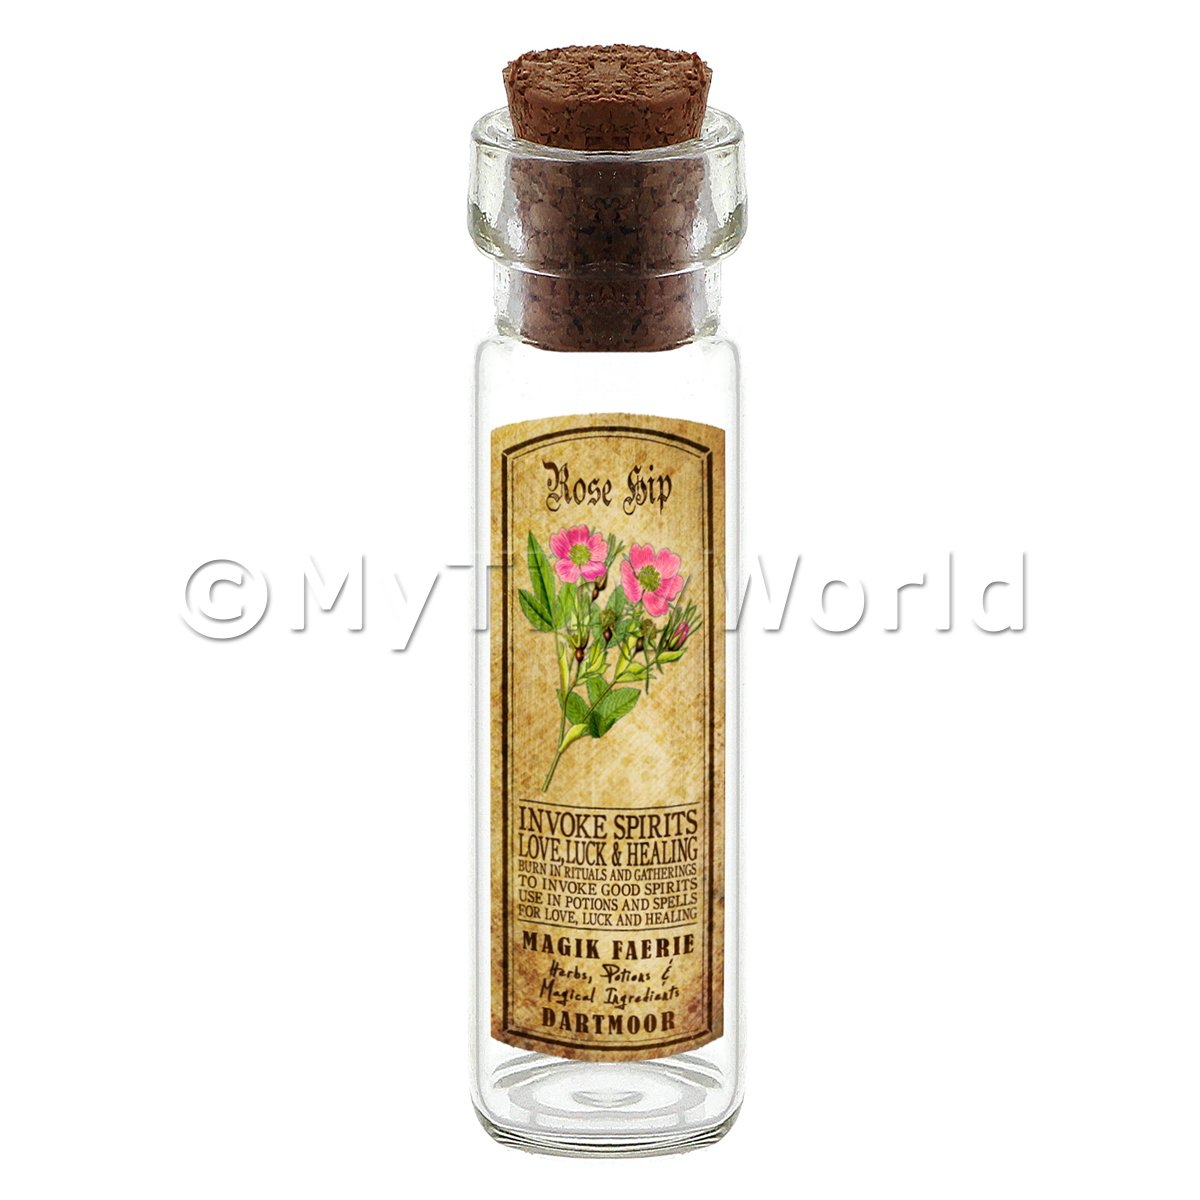 Dolls House Apothecary Rose Hip Herb Long Colour Label And Bottle